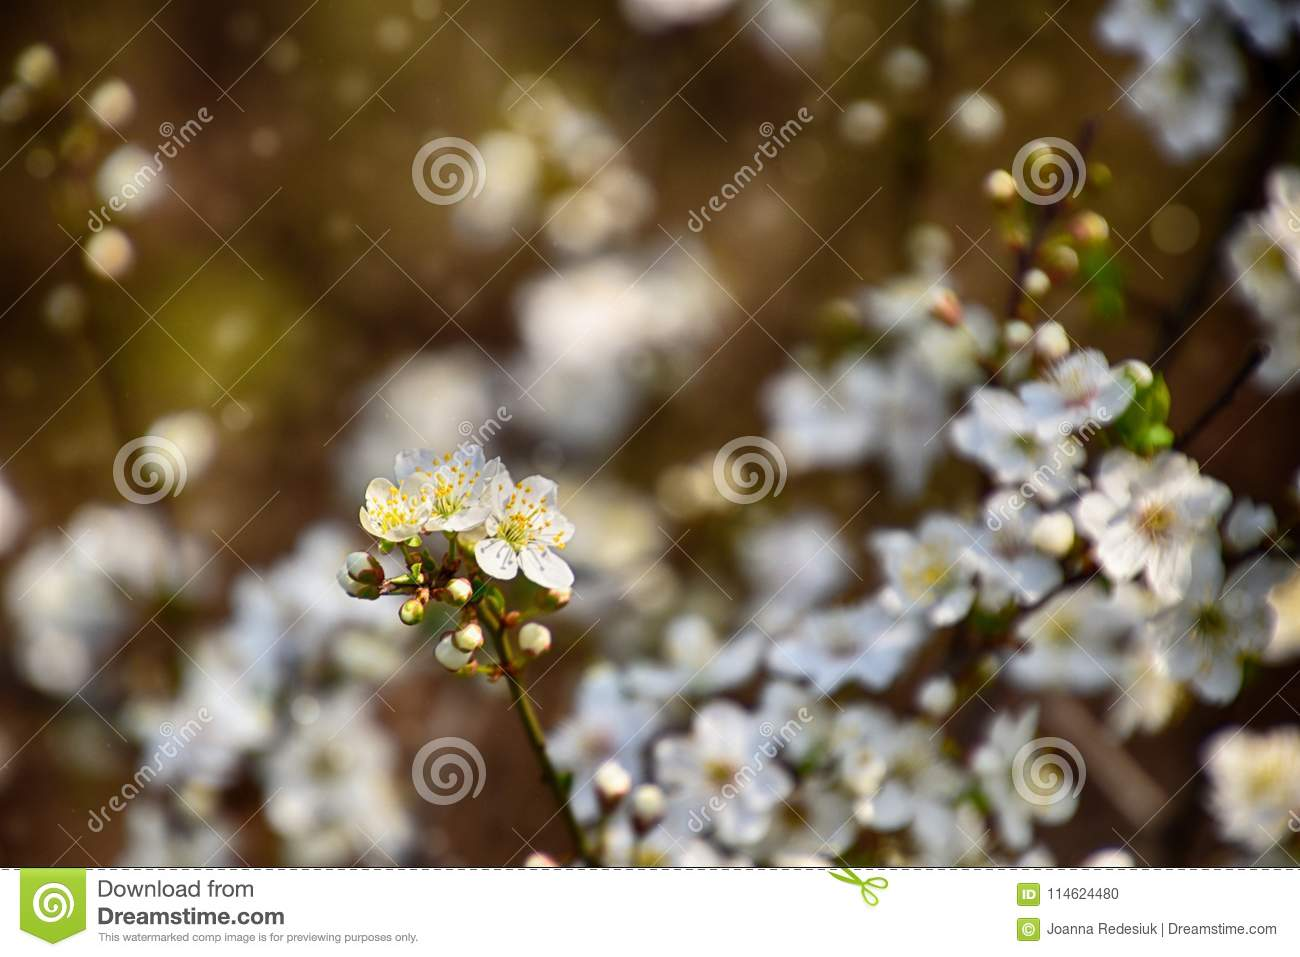 Twig Of A Fruit Tree Showered With Small Delicate White Flowers